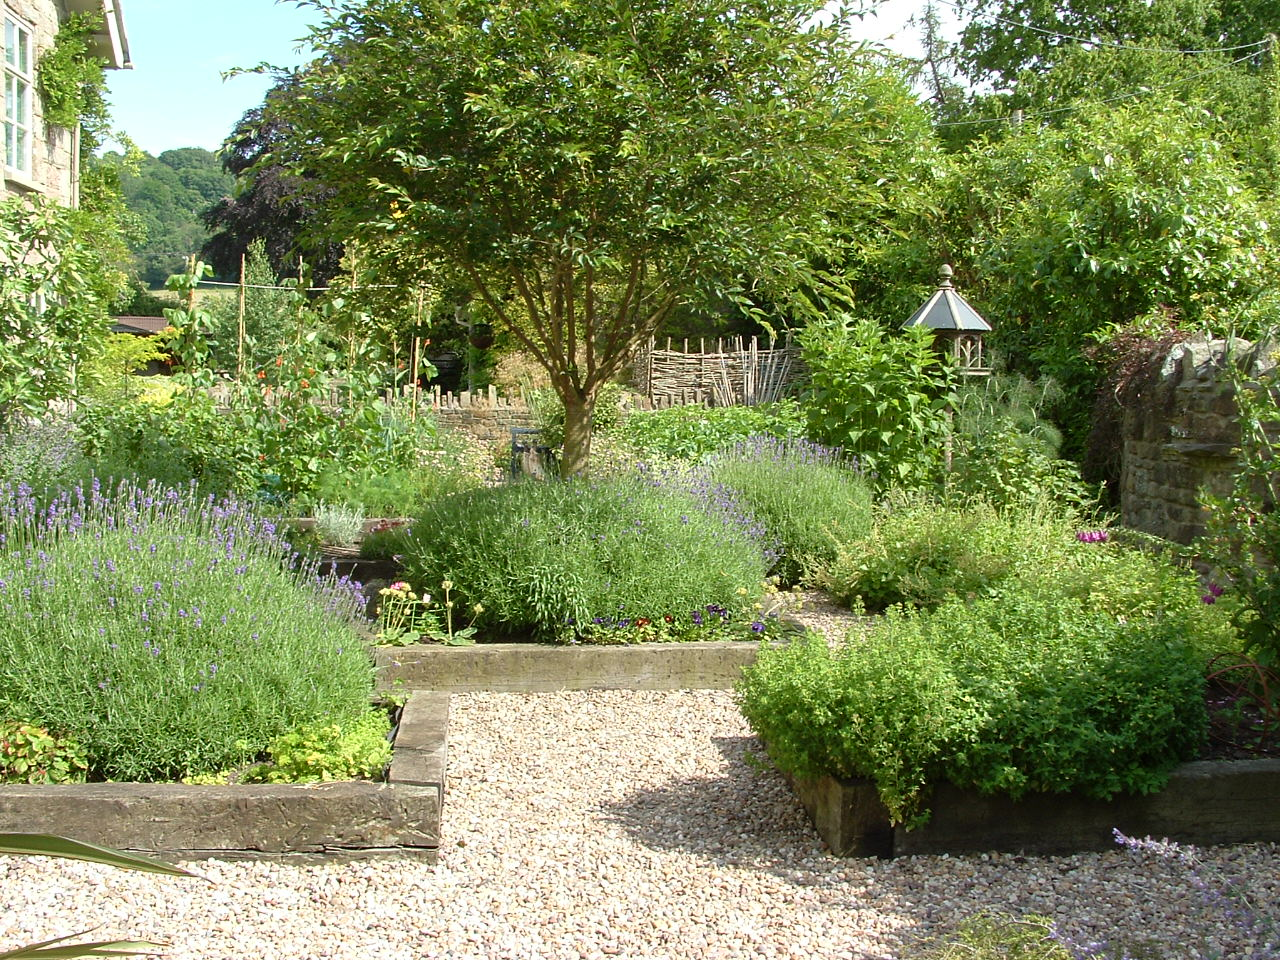 A pottage or 'posh veg' vegetable, herb and cut flower garden